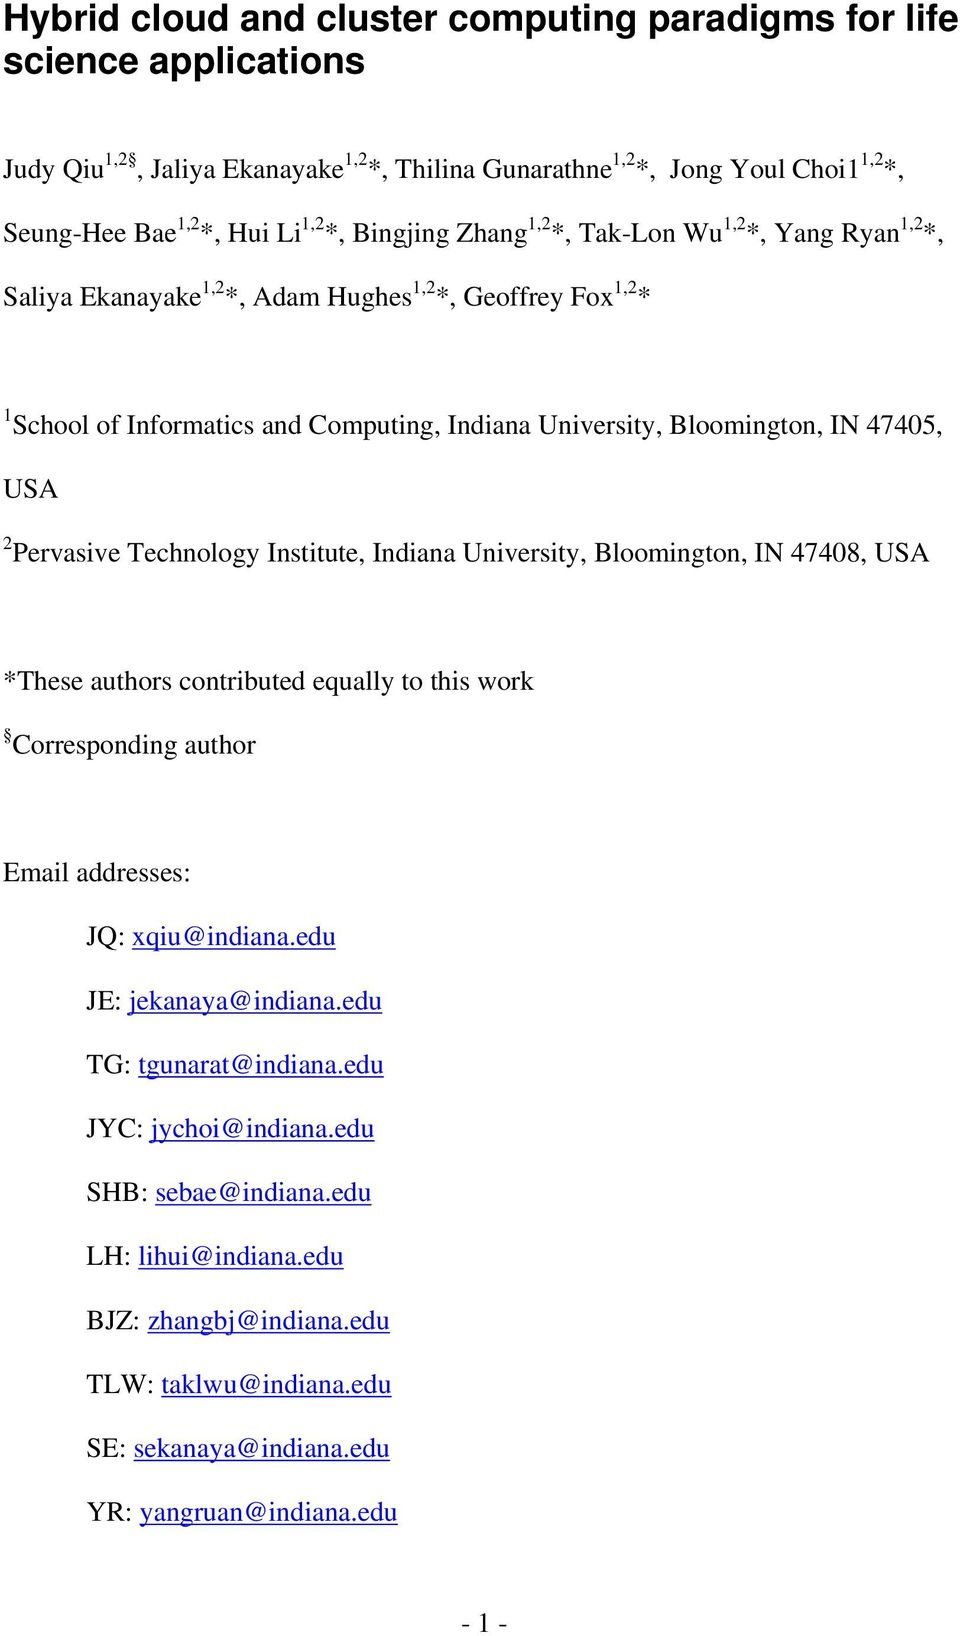 47405, USA 2 Pervasive Technology Institute, Indiana University, Bloomington, IN 47408, USA *These authors contributed equally to this work Corresponding author Email addresses: JQ: xqiu@indiana.